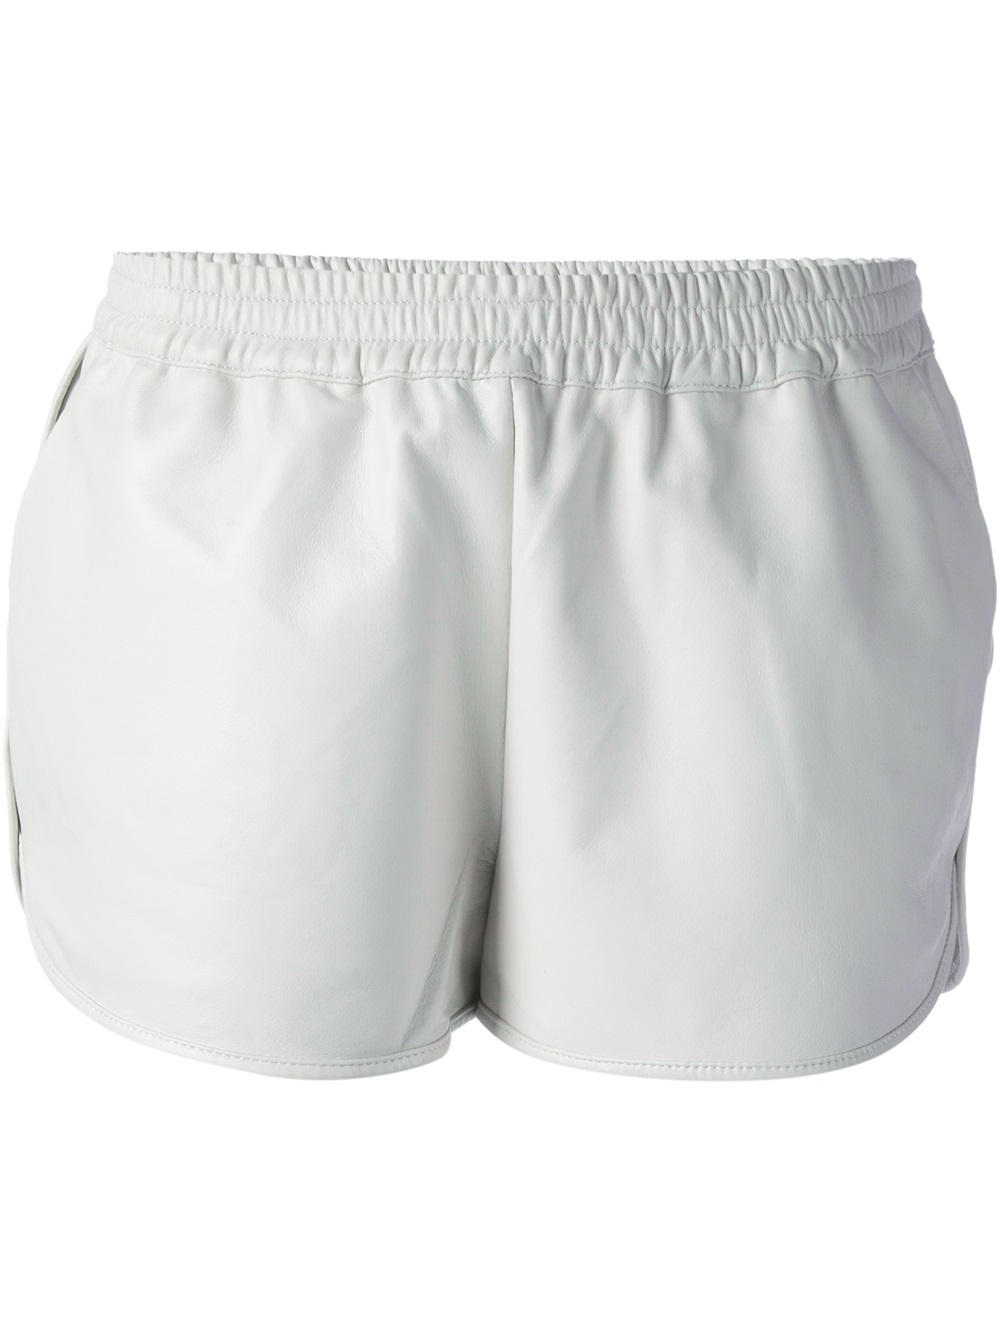 Elizabeth and james Hammond Leather Shorts in White | Lyst